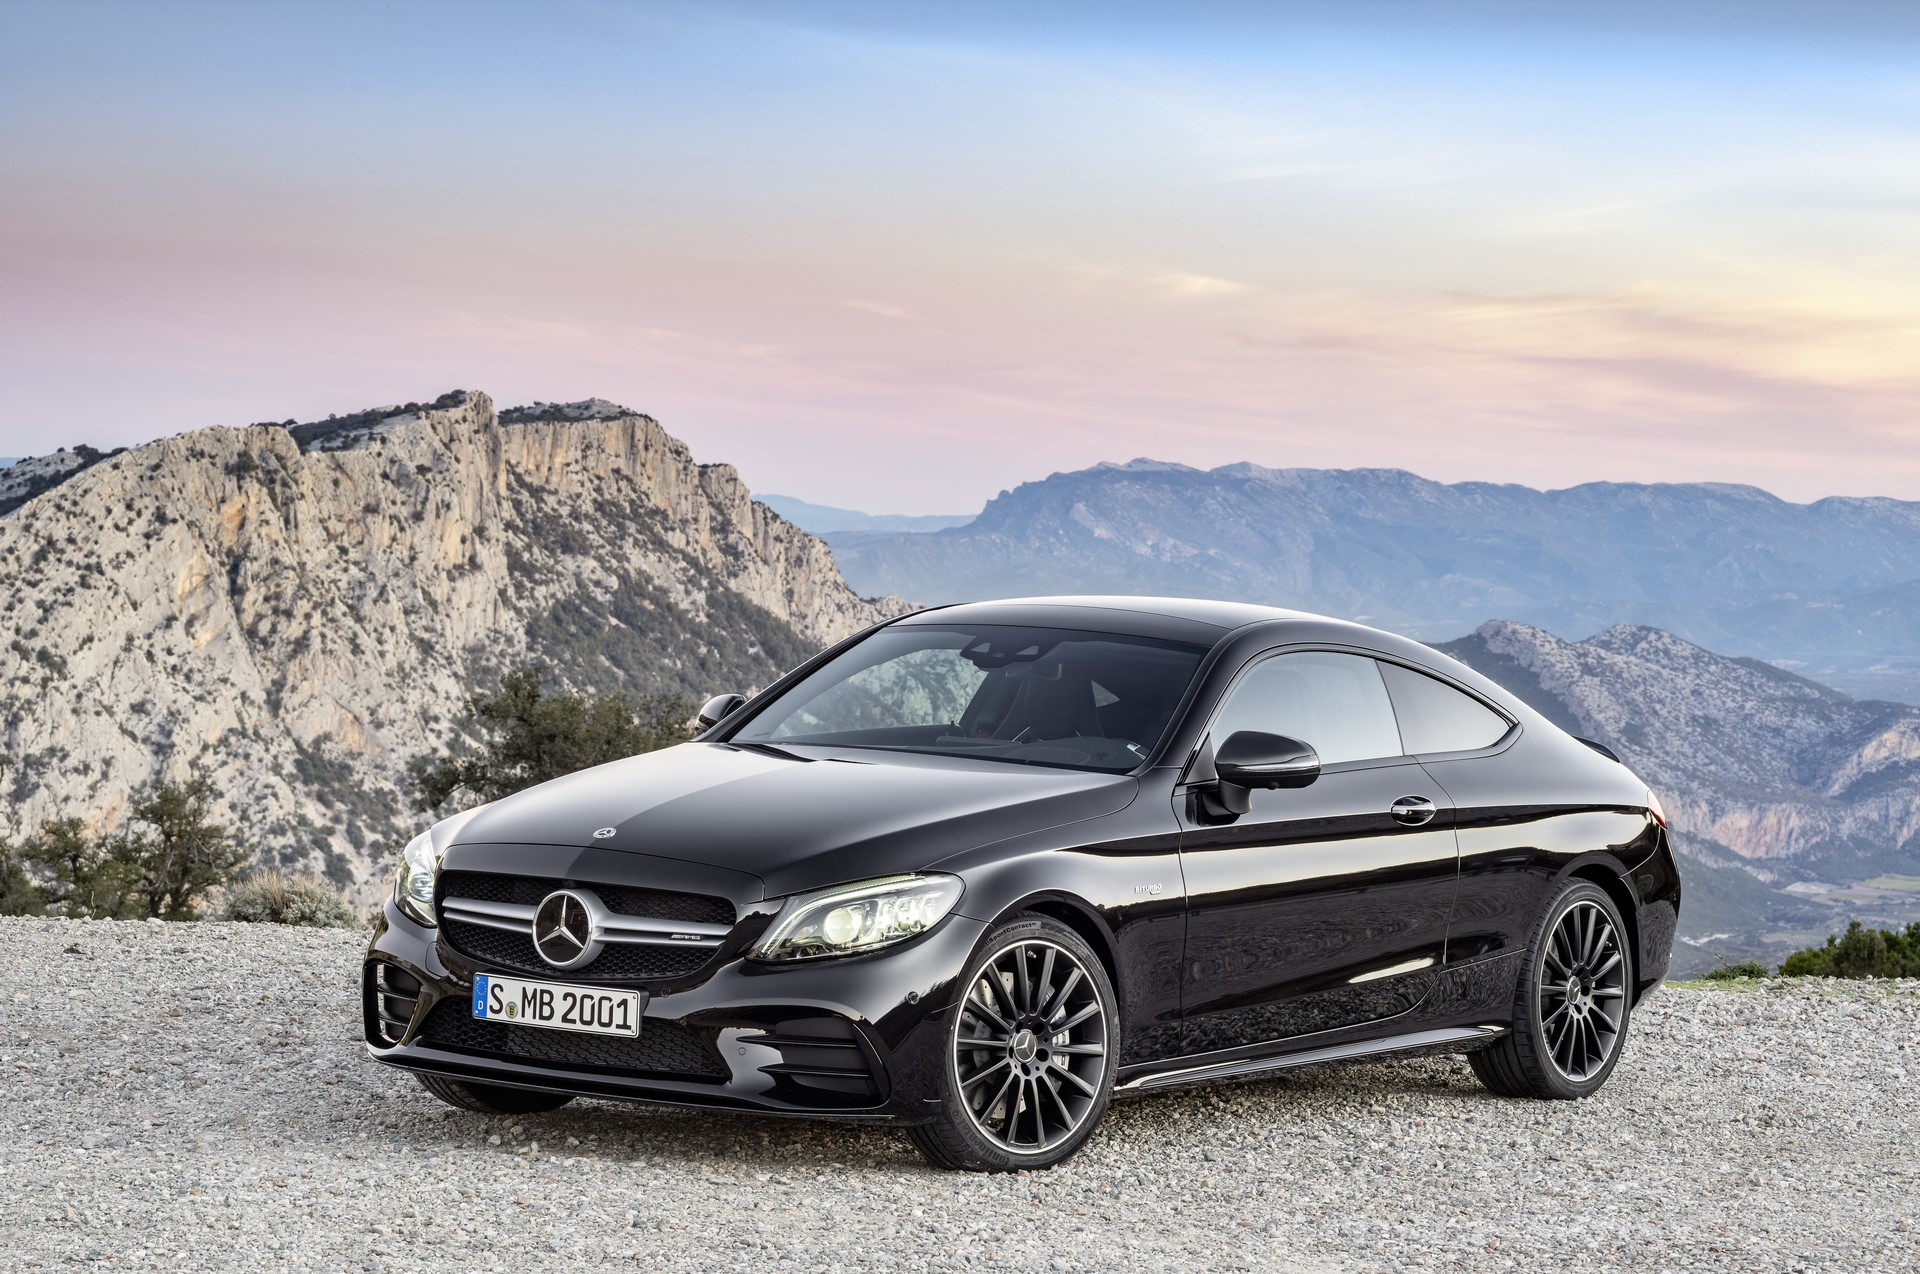 Mercedes C-Class Coupe and Cabriolet facelift - Vehiclejar ...